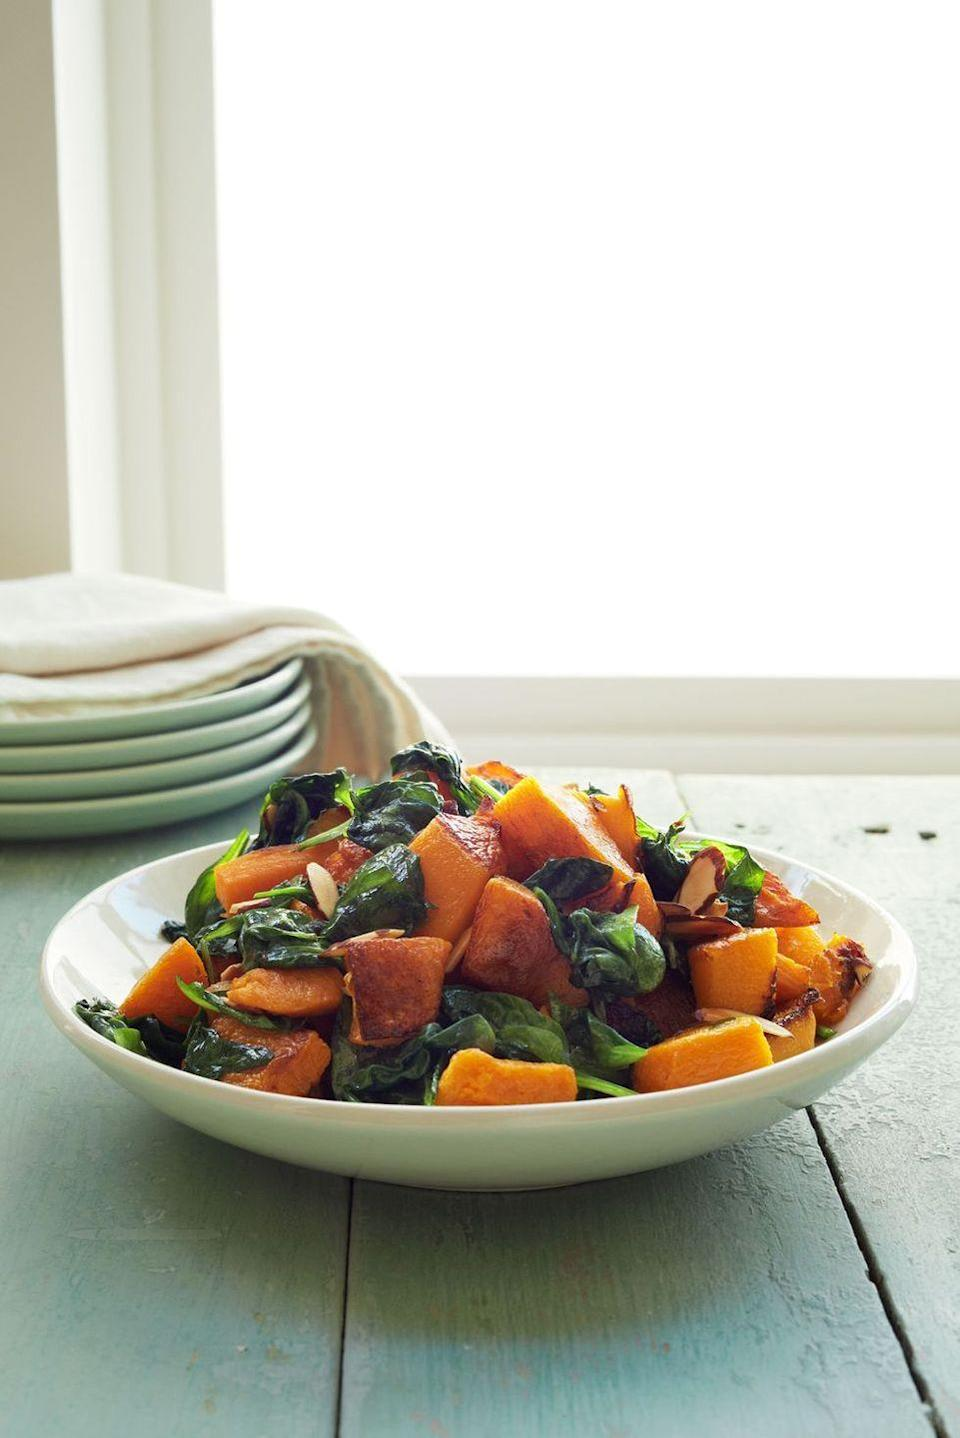 """<p>Folding fresh spinach into roasted butternut squash makes the leaves warm and wilty, and sprinkling the dish with almonds adds irresistible crunch.</p><p><em><a href=""""https://www.goodhousekeeping.com/food-recipes/a15496/roasted-butternut-squash-spinach-recipe-wdy0114/"""" rel=""""nofollow noopener"""" target=""""_blank"""" data-ylk=""""slk:Get the recipe for Roasted Butternut Squash and Spinach »"""" class=""""link rapid-noclick-resp"""">Get the recipe for Roasted Butternut Squash and Spinach »</a></em></p><p><strong>RELATED: </strong><a href=""""https://www.goodhousekeeping.com/food-recipes/cooking/tips/g2091/prepare-cook-butternut-squash/"""" rel=""""nofollow noopener"""" target=""""_blank"""" data-ylk=""""slk:How to Peel and Cut Butternut Squash in a Few Easy Steps"""" class=""""link rapid-noclick-resp"""">How to Peel and Cut Butternut Squash in a Few Easy Steps</a></p>"""